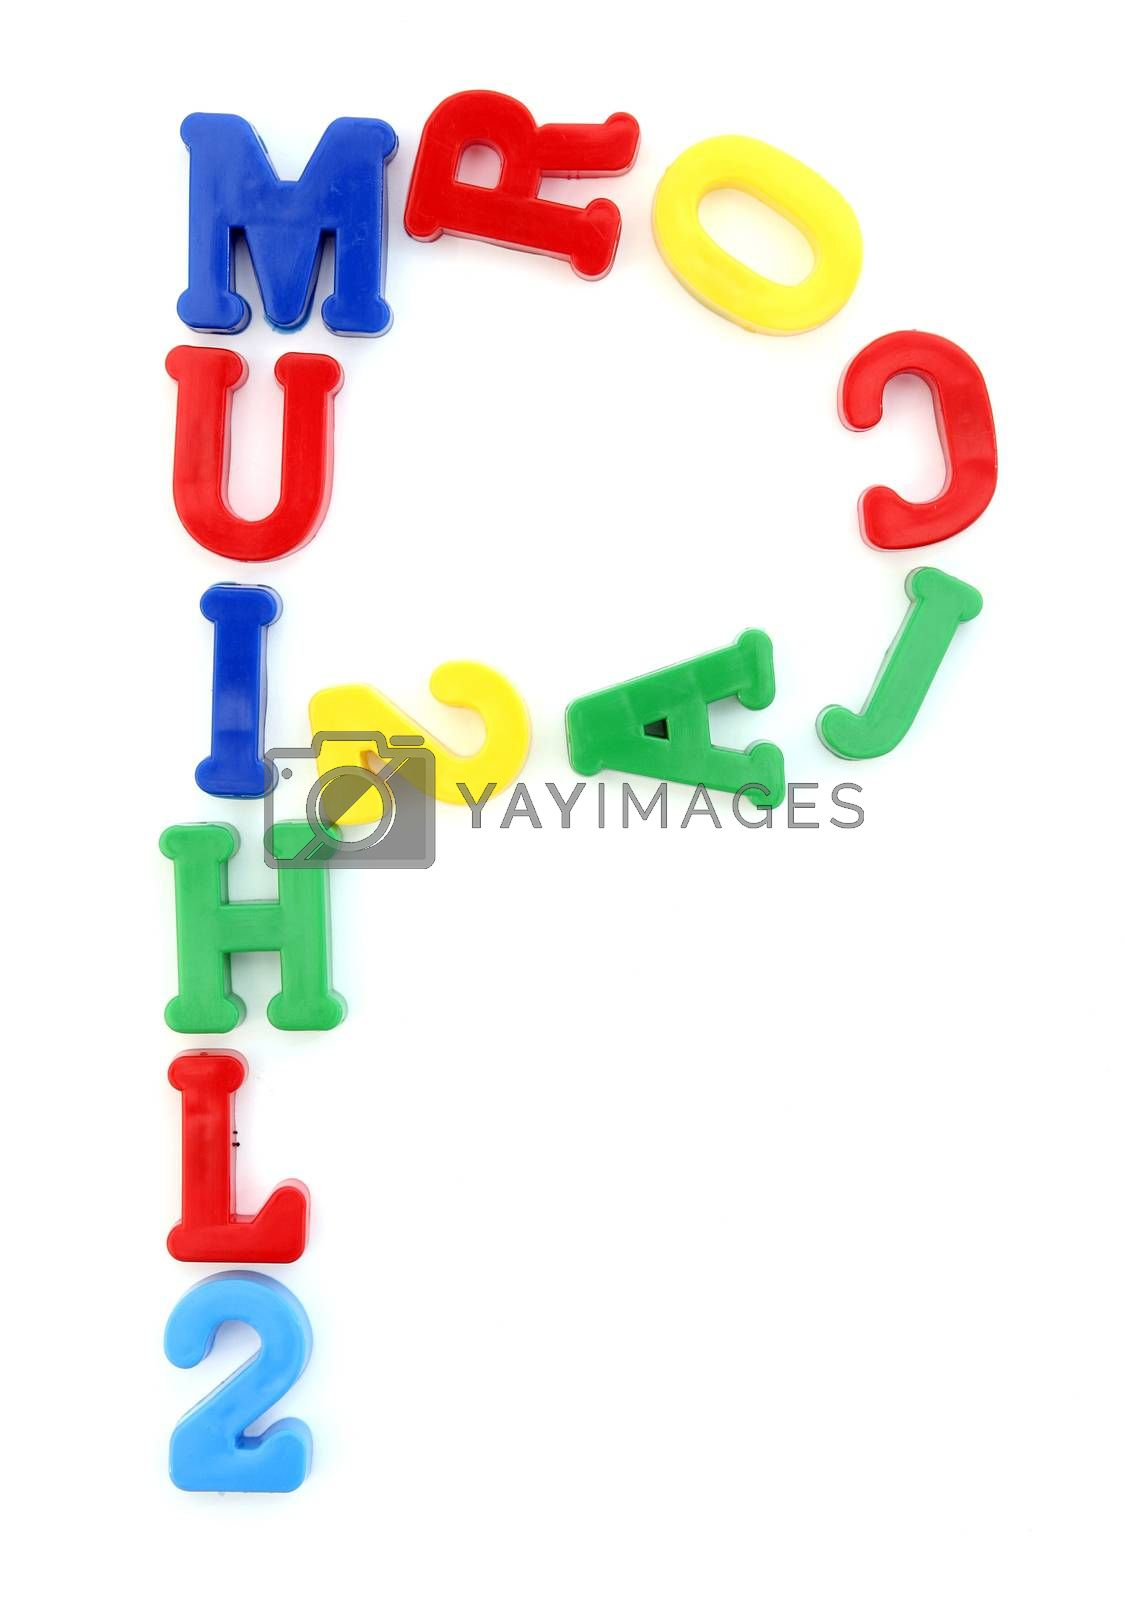 You can write messages with this letters series! You can find all letters on my portfolio! Another series are also available.